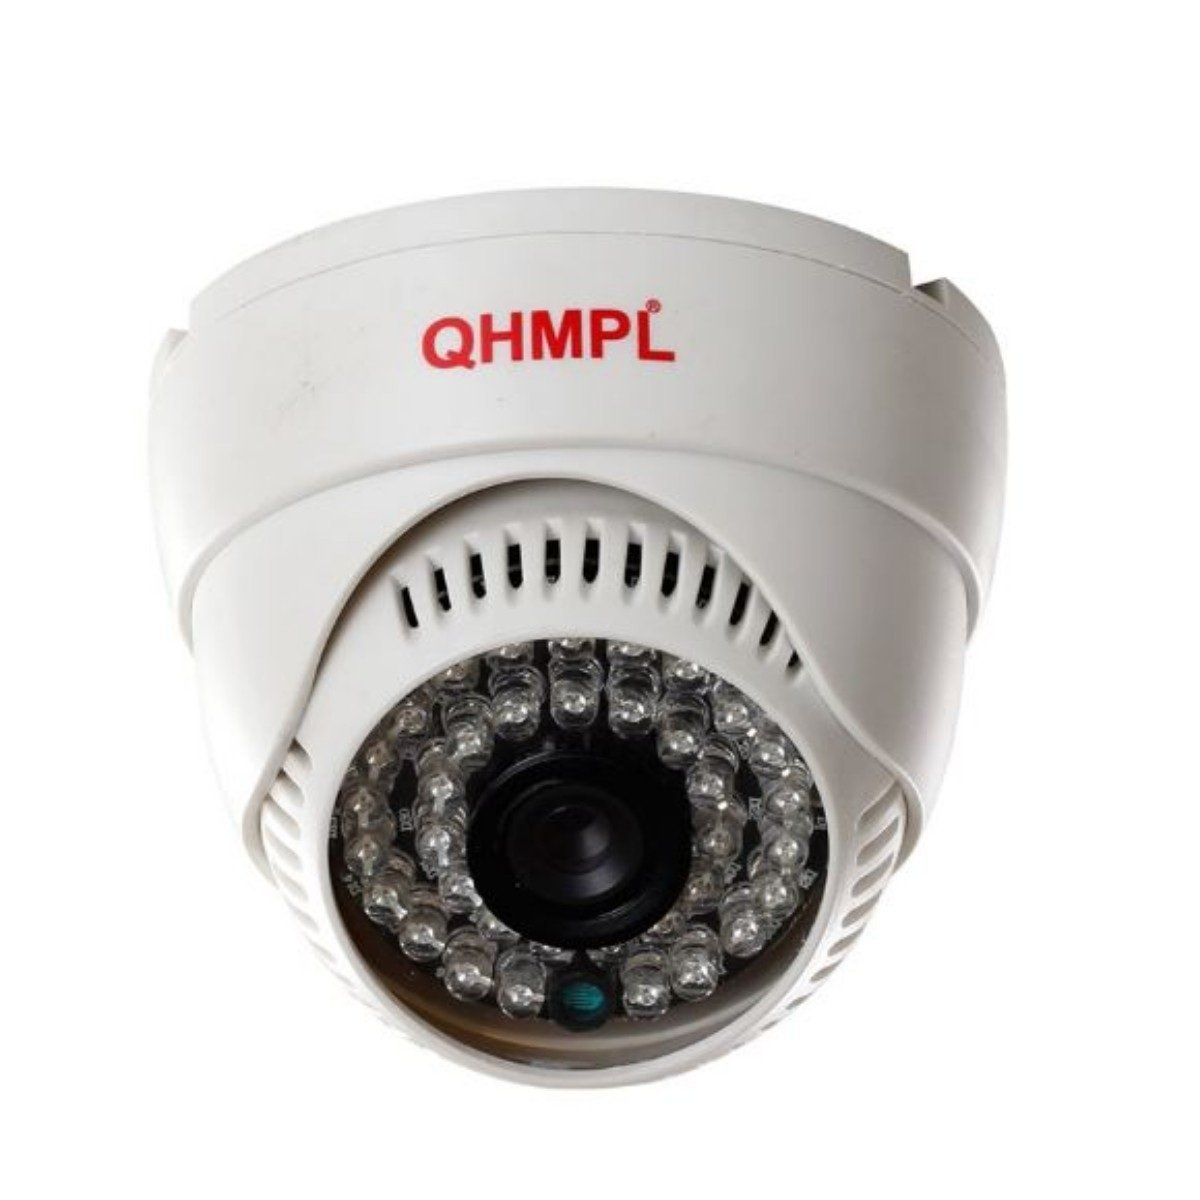 Quantum QDIS-2MD3334 Analog High Definition Dome Camera